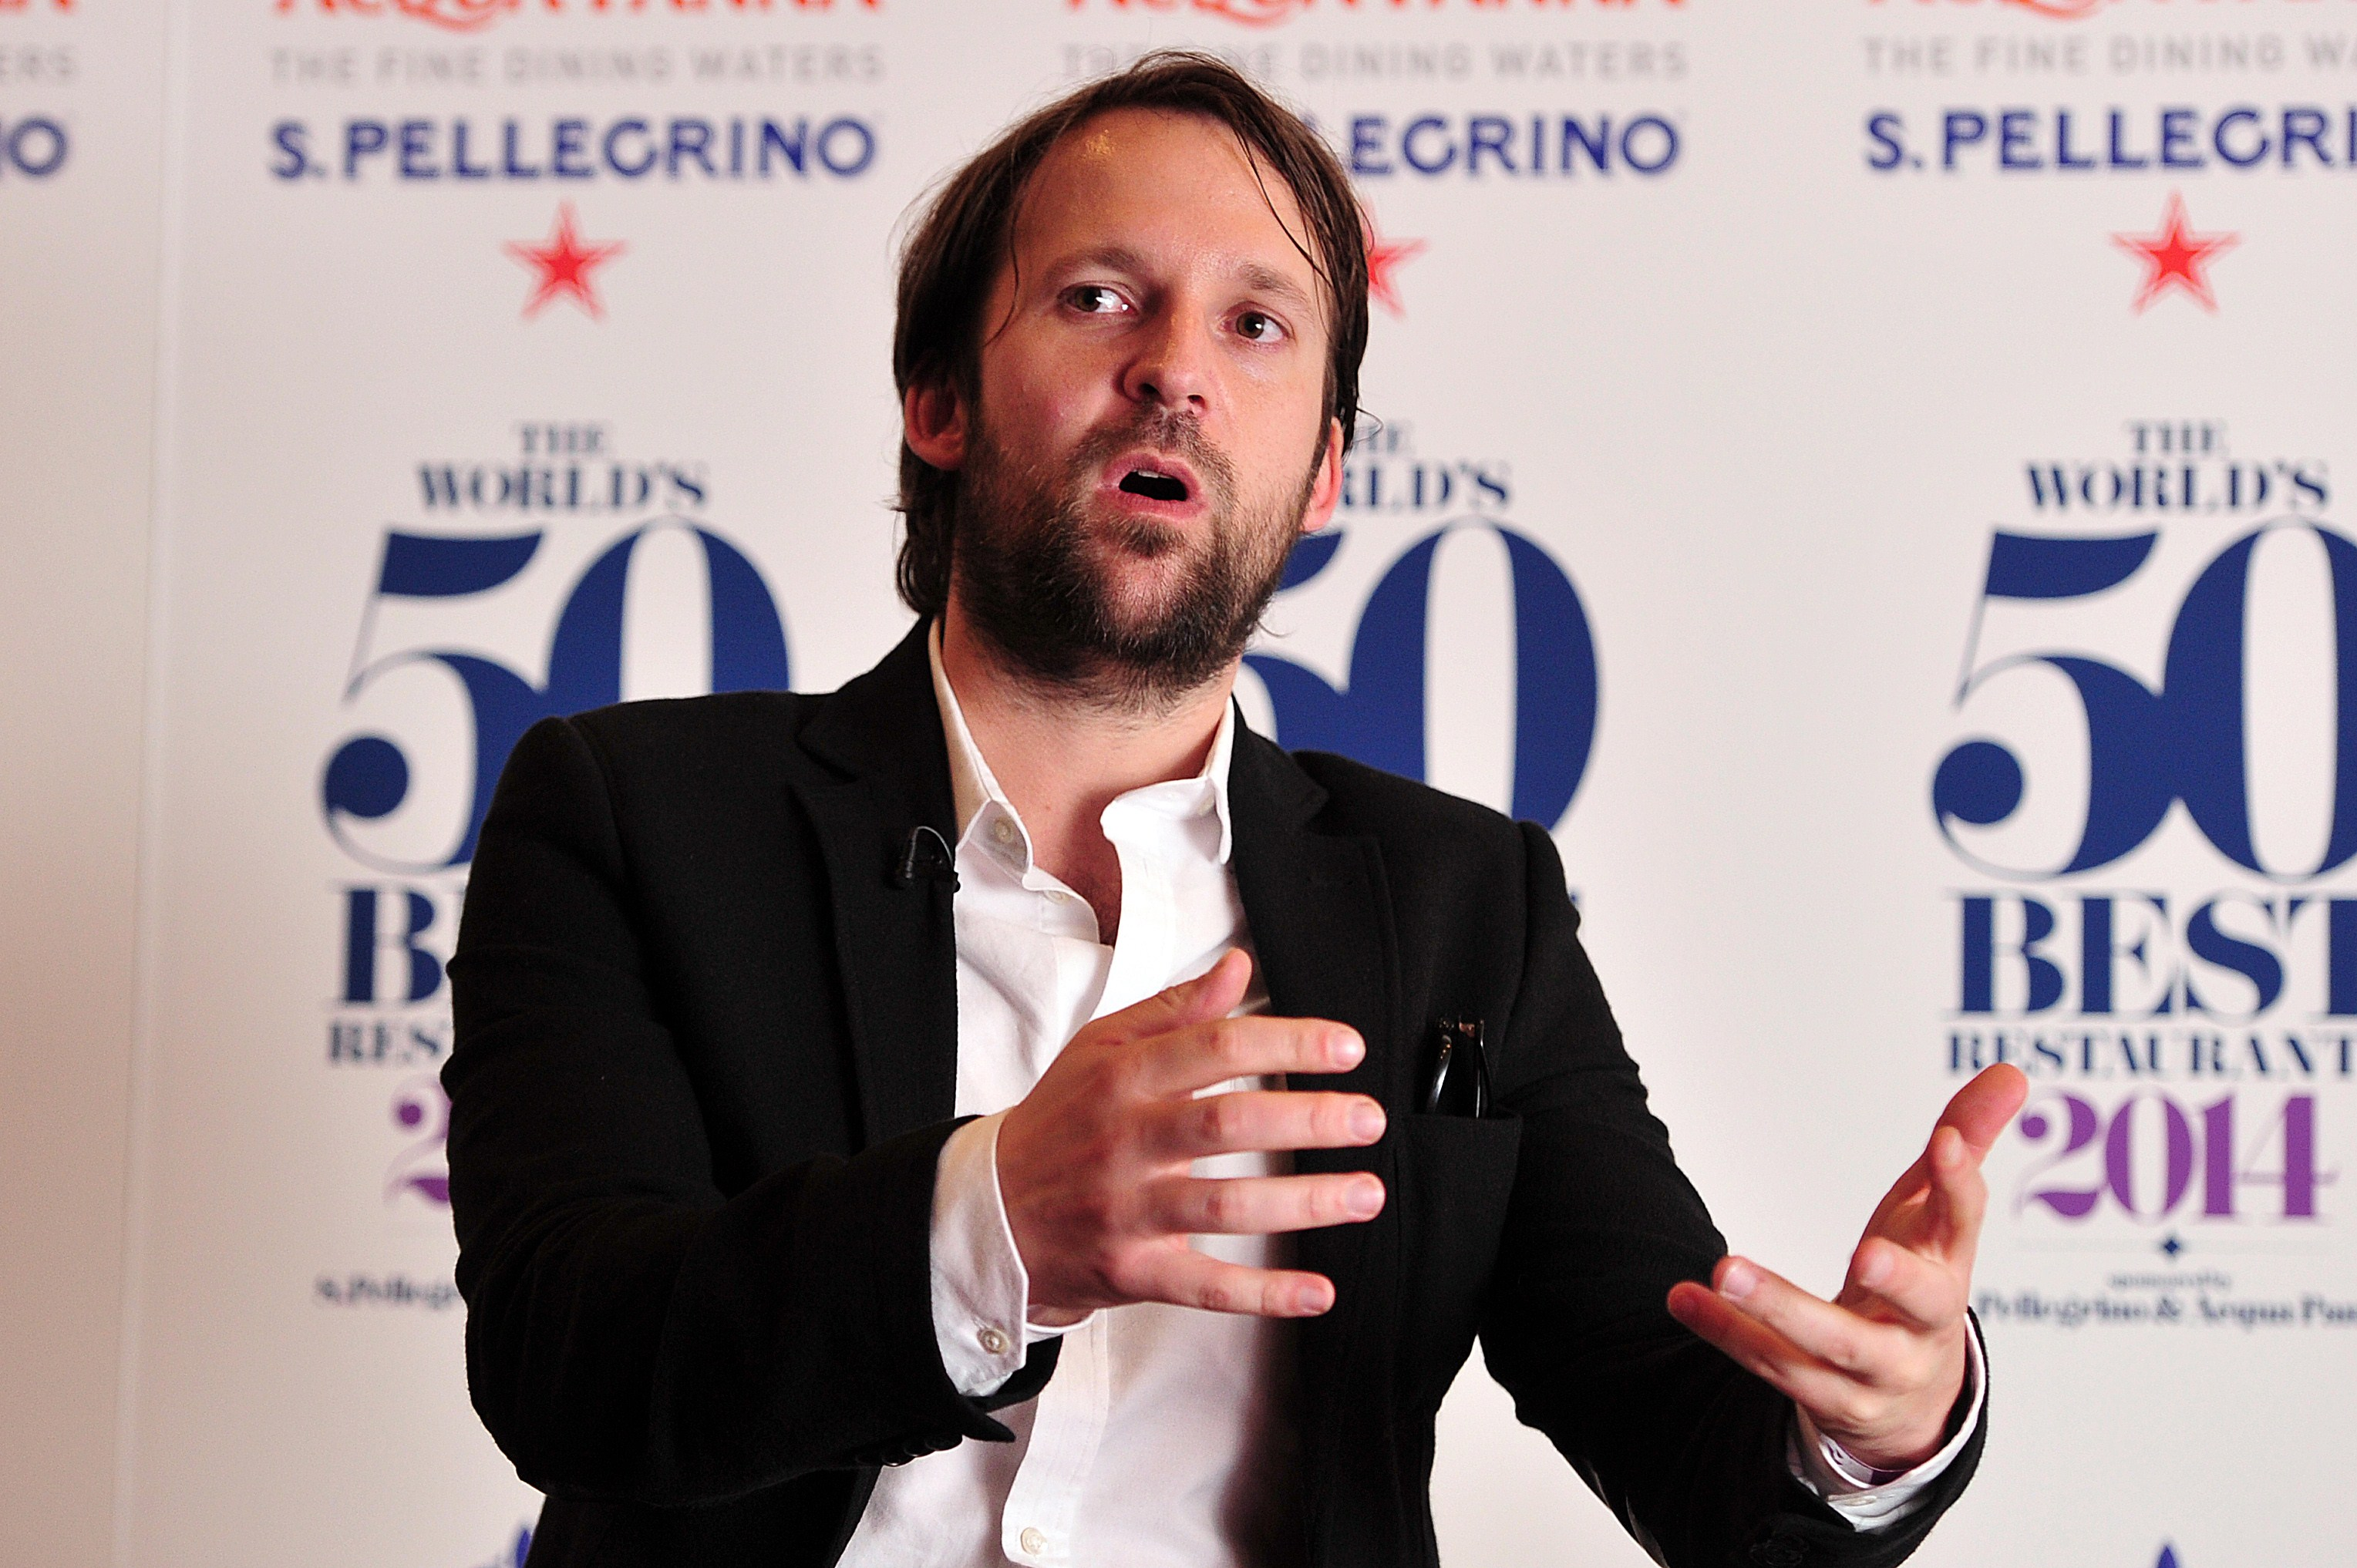 René Redzepi's Noma was No. 1 in 2014, 2012, 2011, and 2010. It is eligible to be on the list this year because it relocated.